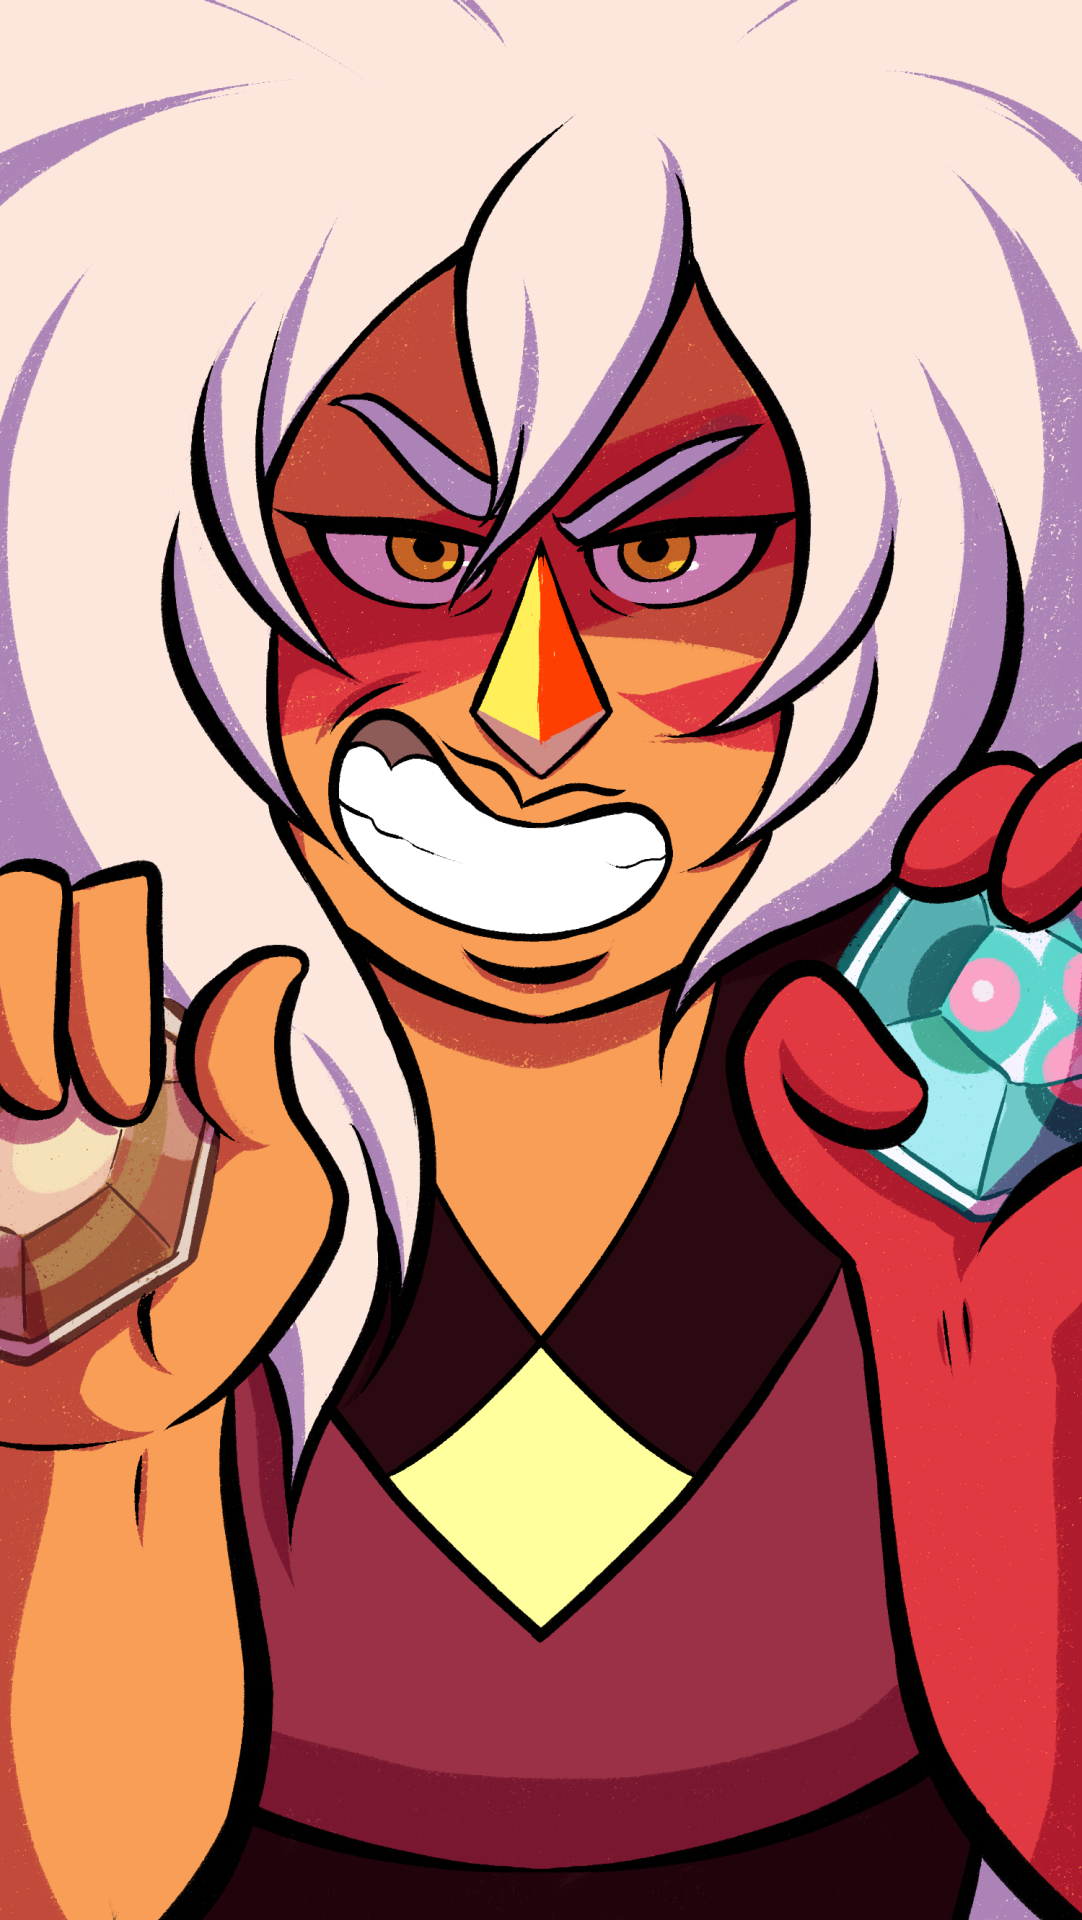 Cheeto Puff phone wallpaper for your Gem Hunting expericence